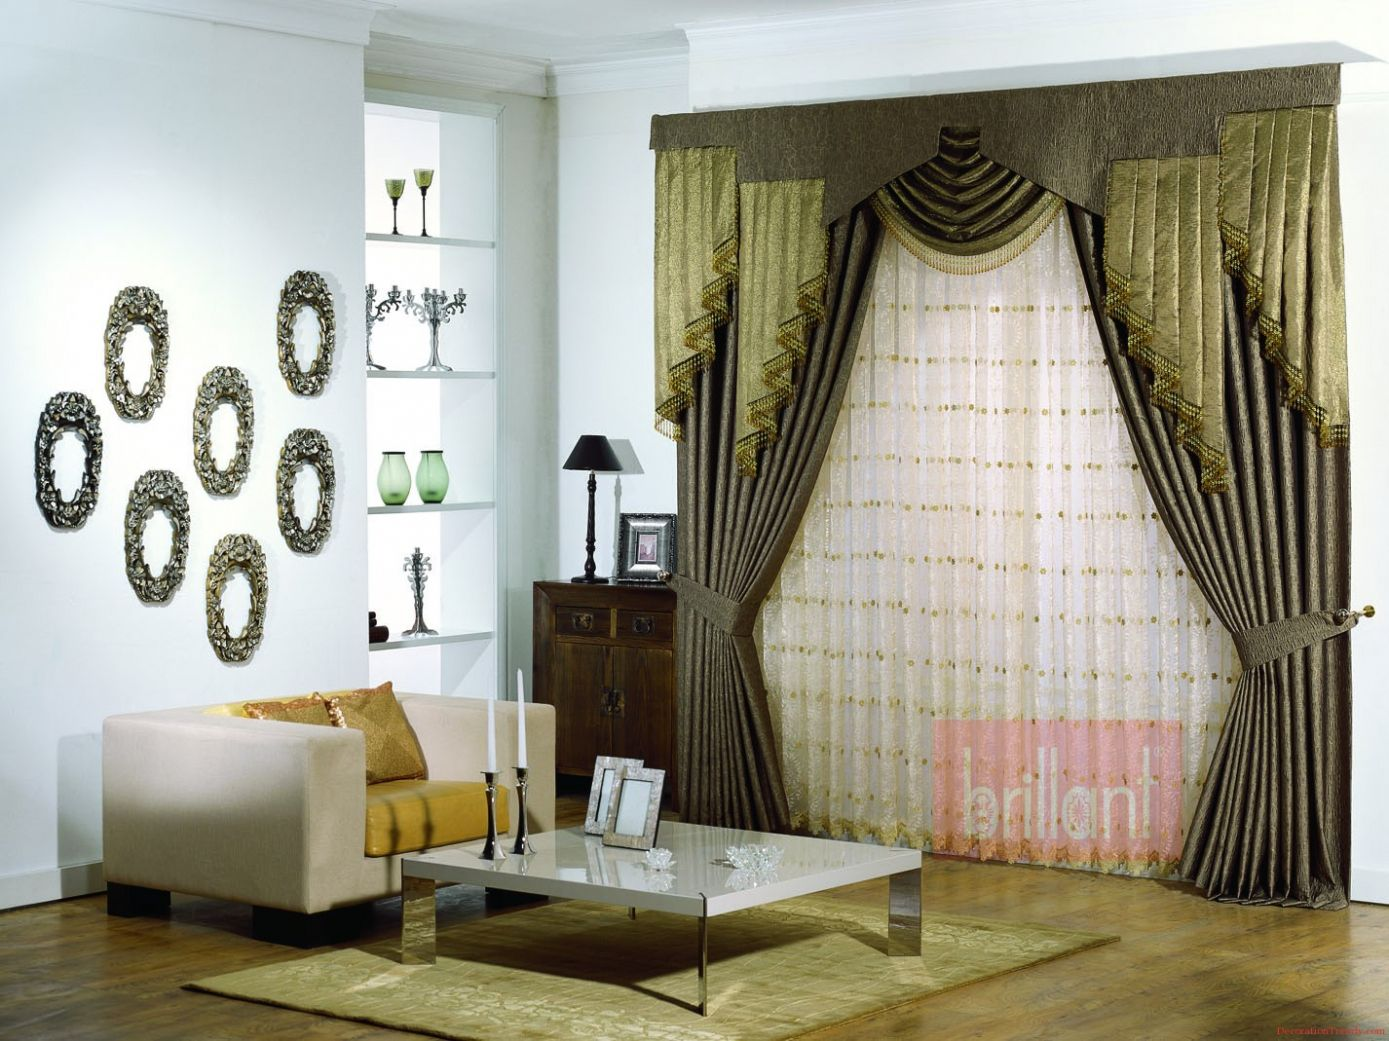 70 modern curtains for living room pictures interior paint color rh pinterest com Front Room Curtain Designs for Large Window Living Room Curtain Decorating Ideas